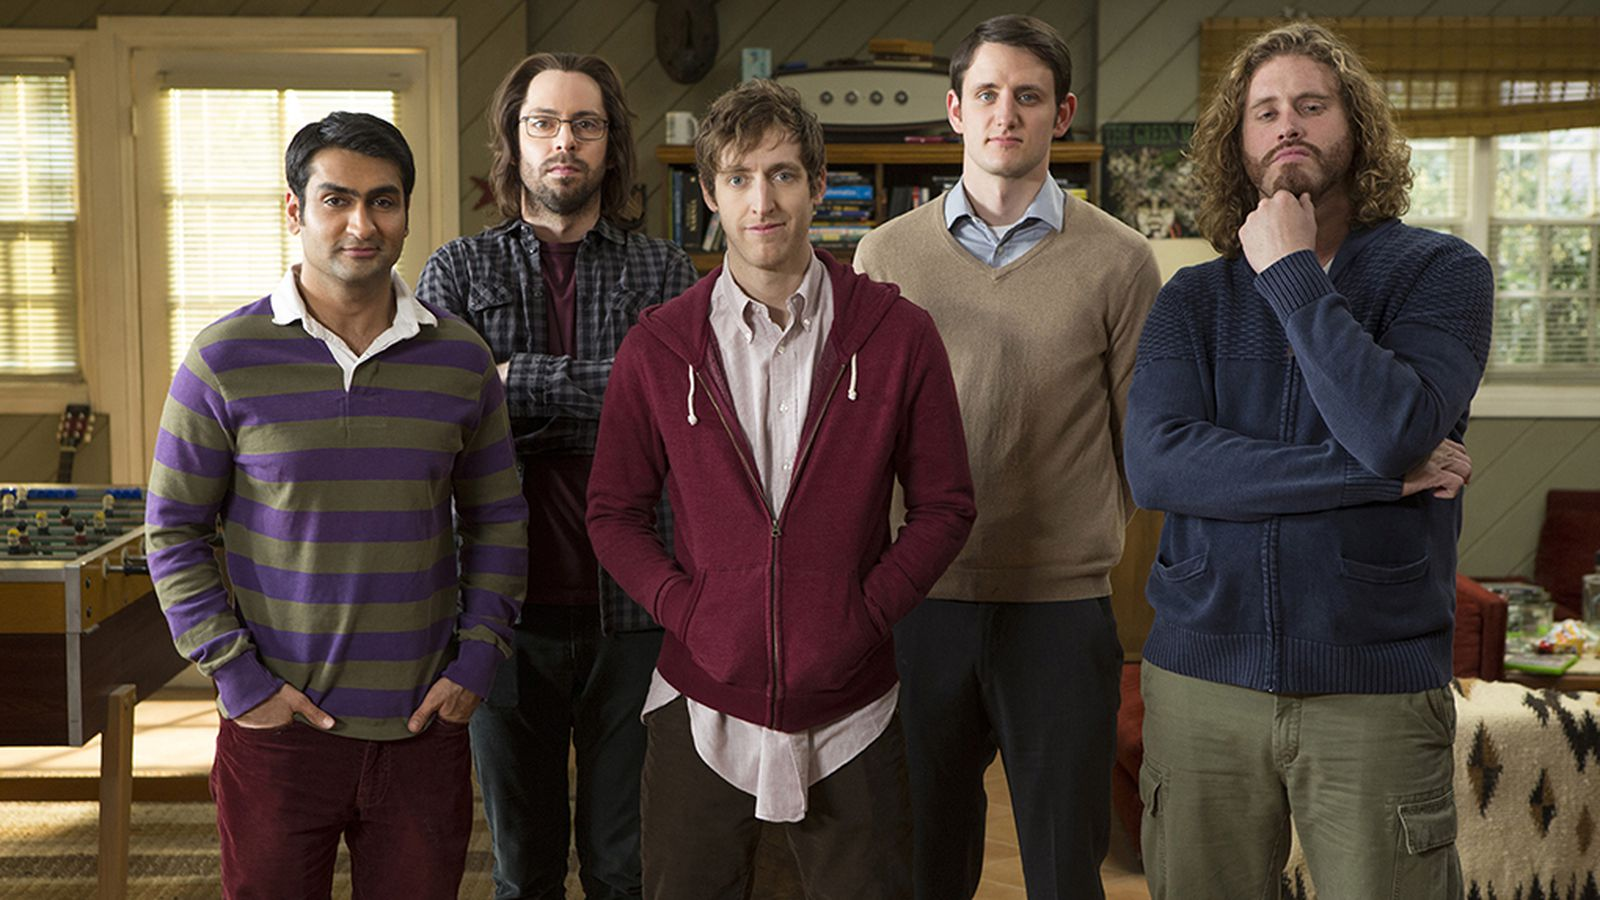 hbo ilicon valley39 tech. Mike Judge\u0027s \u0027Silicon Valley\u0027 Hits The Tech World Where It Hurts | Verge Hbo Ilicon Valley39 A